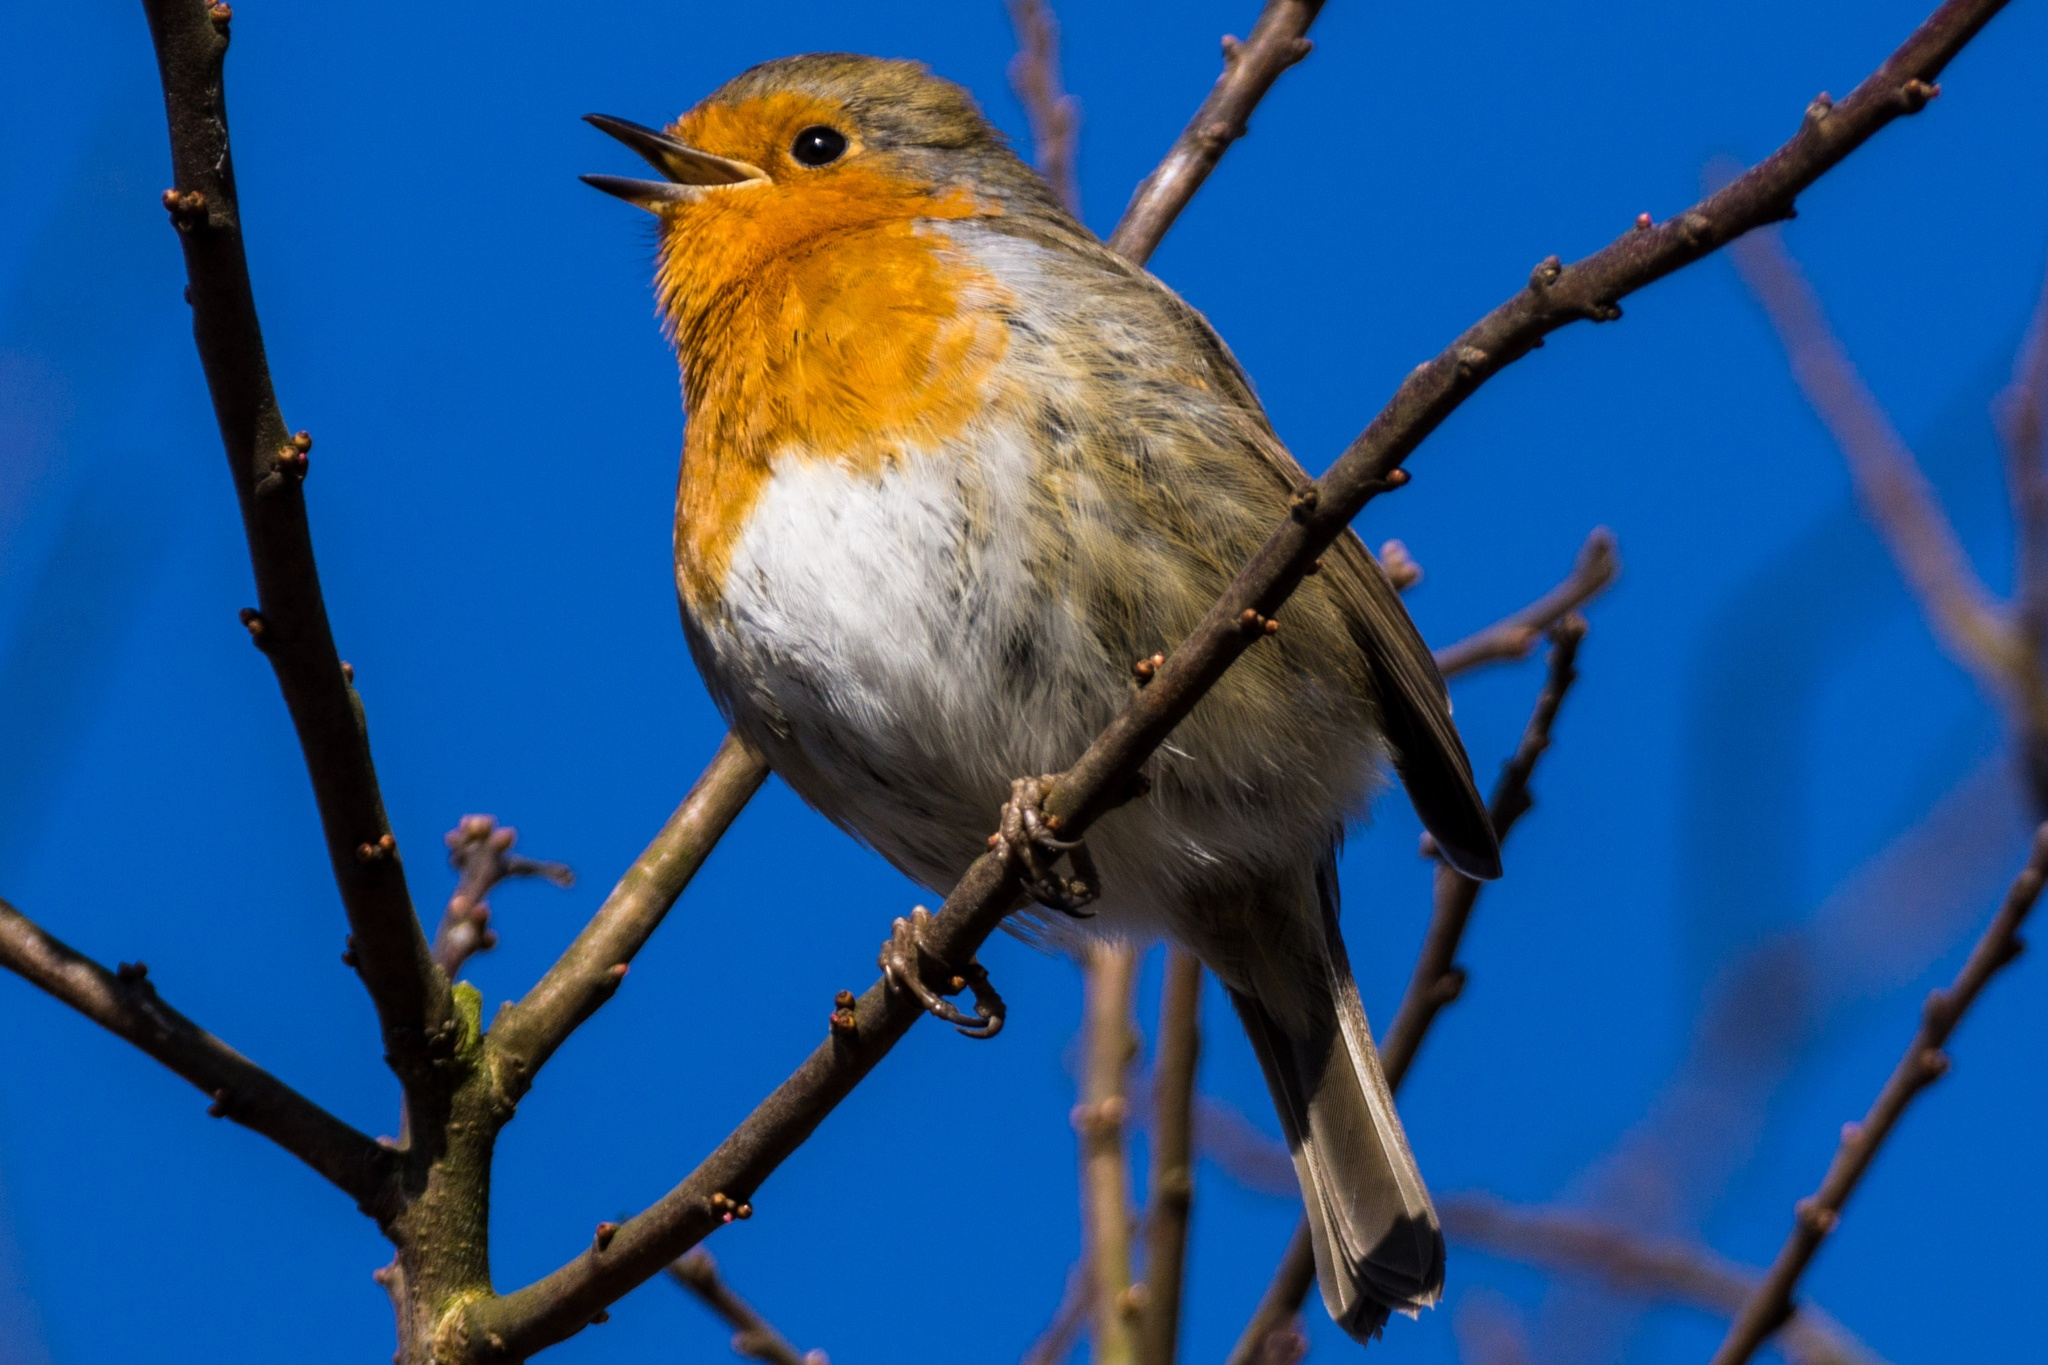 Little Robin Red Breast  by Graham Cunningham